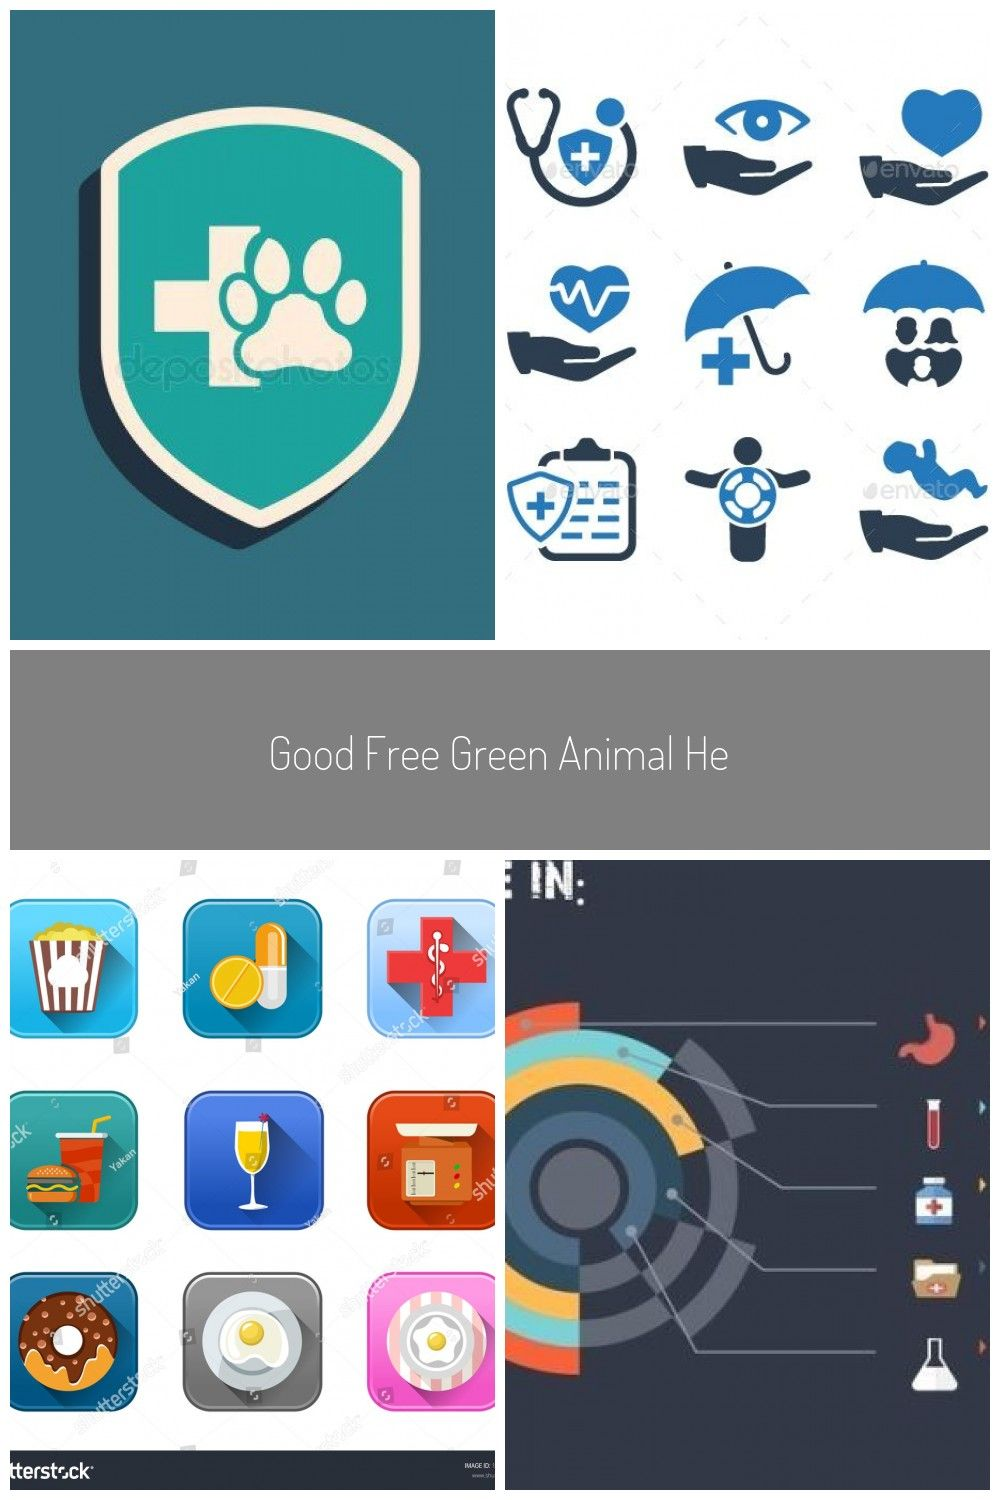 Good Free Green Animal Health Insurance Icon Isolated On Blue